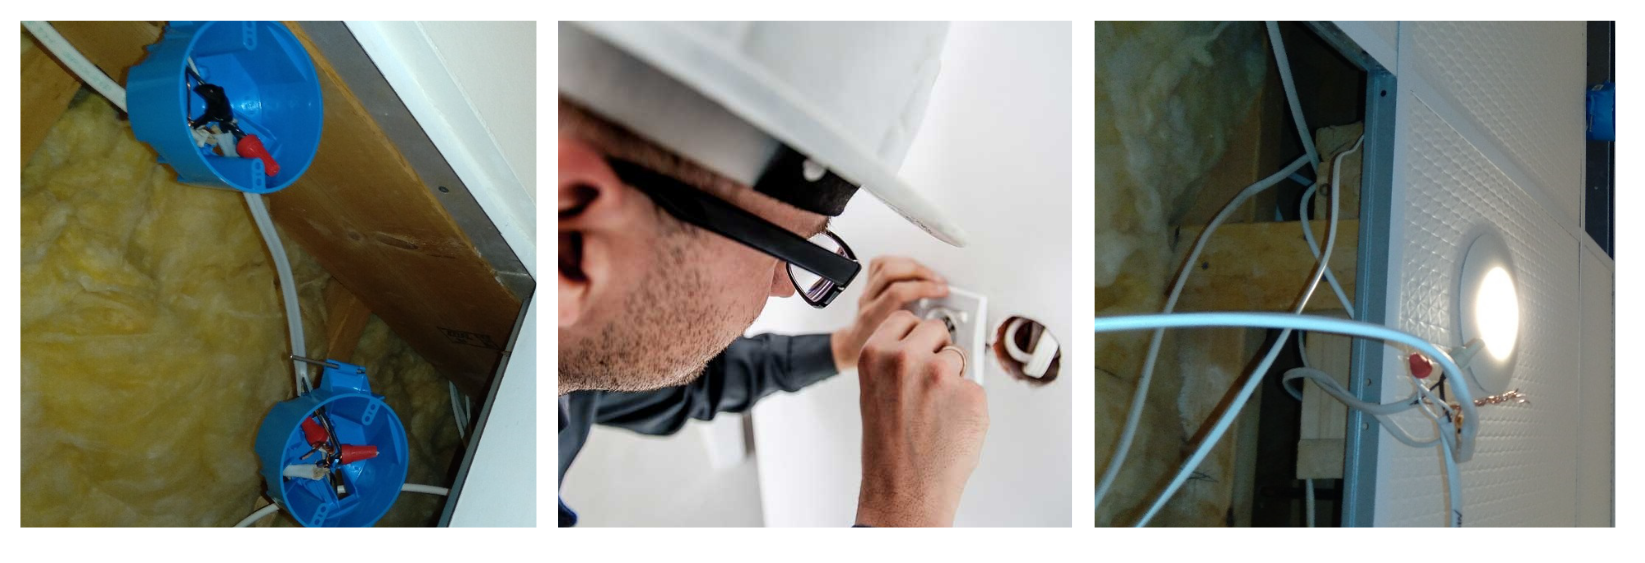 Four Most Common Electrical Safety Mistakes